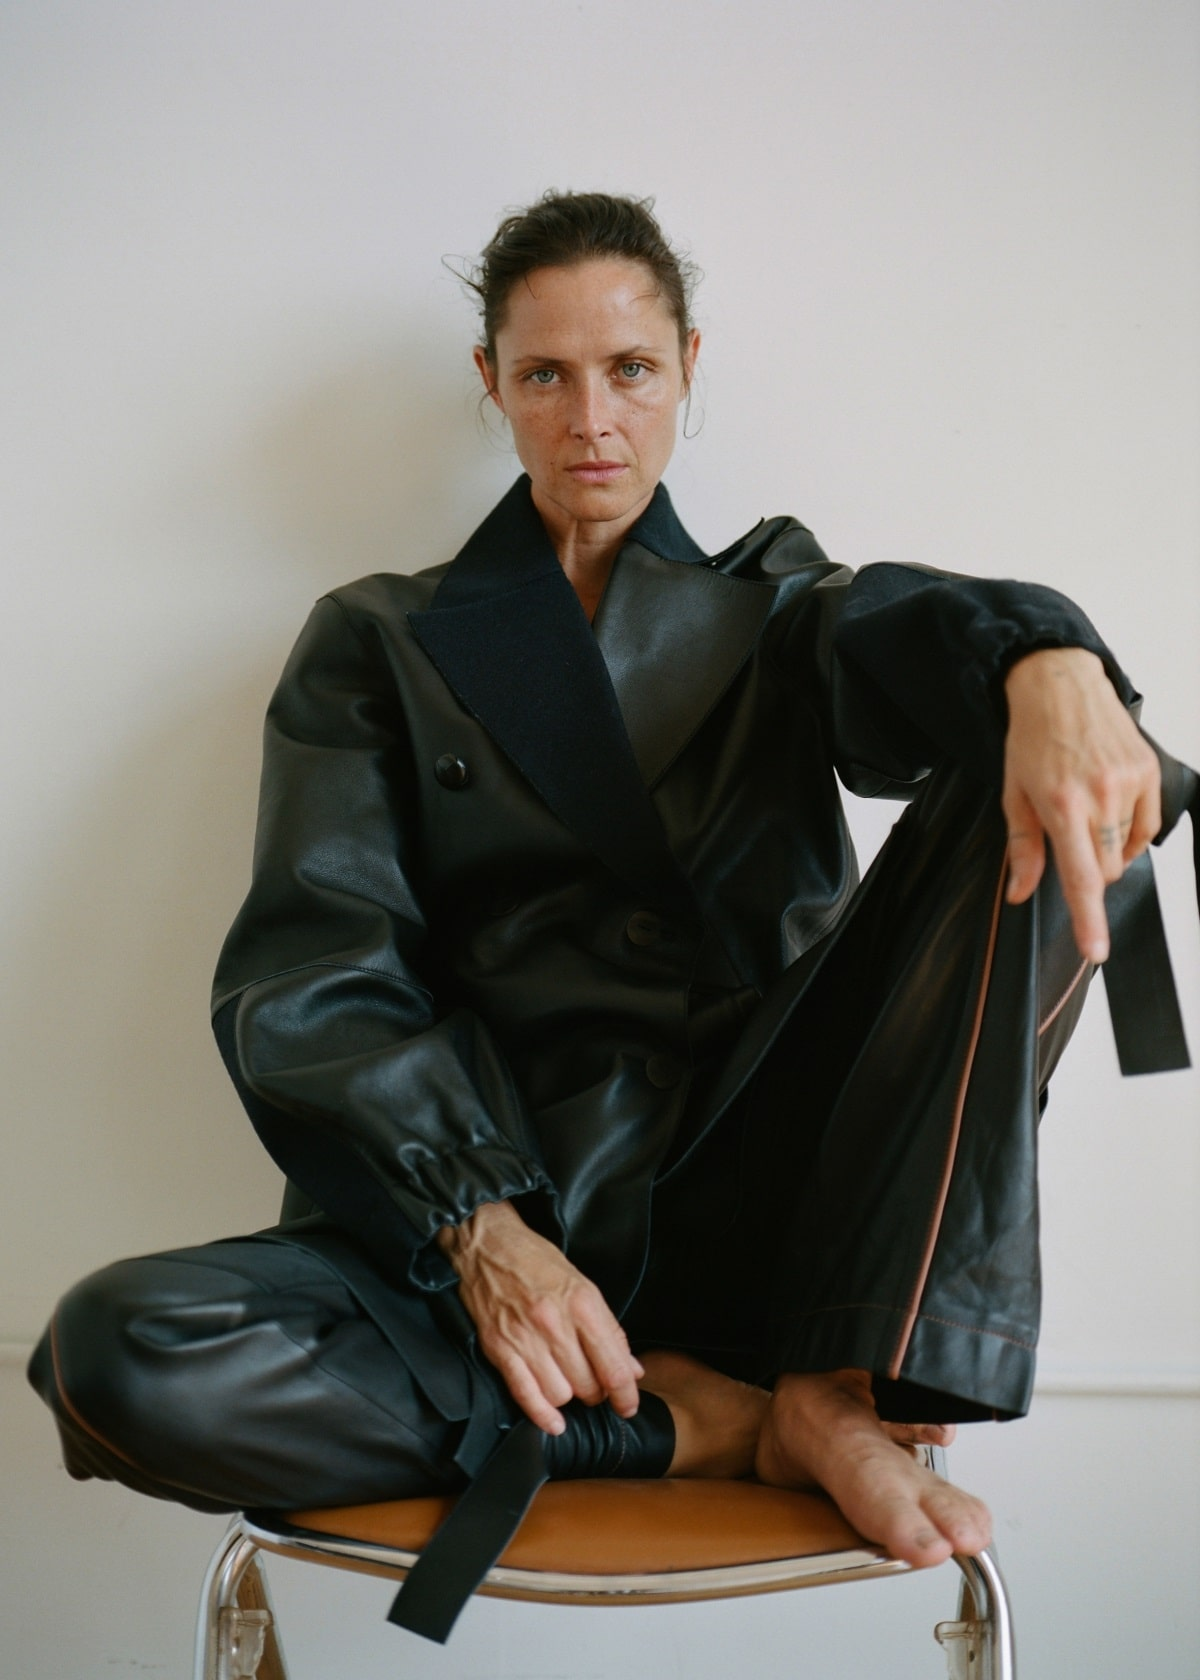 Tasha-Tilberg-by-Mark-Rabadan-for-Collection-Issue-Fall-Winter-2019-1.jpg